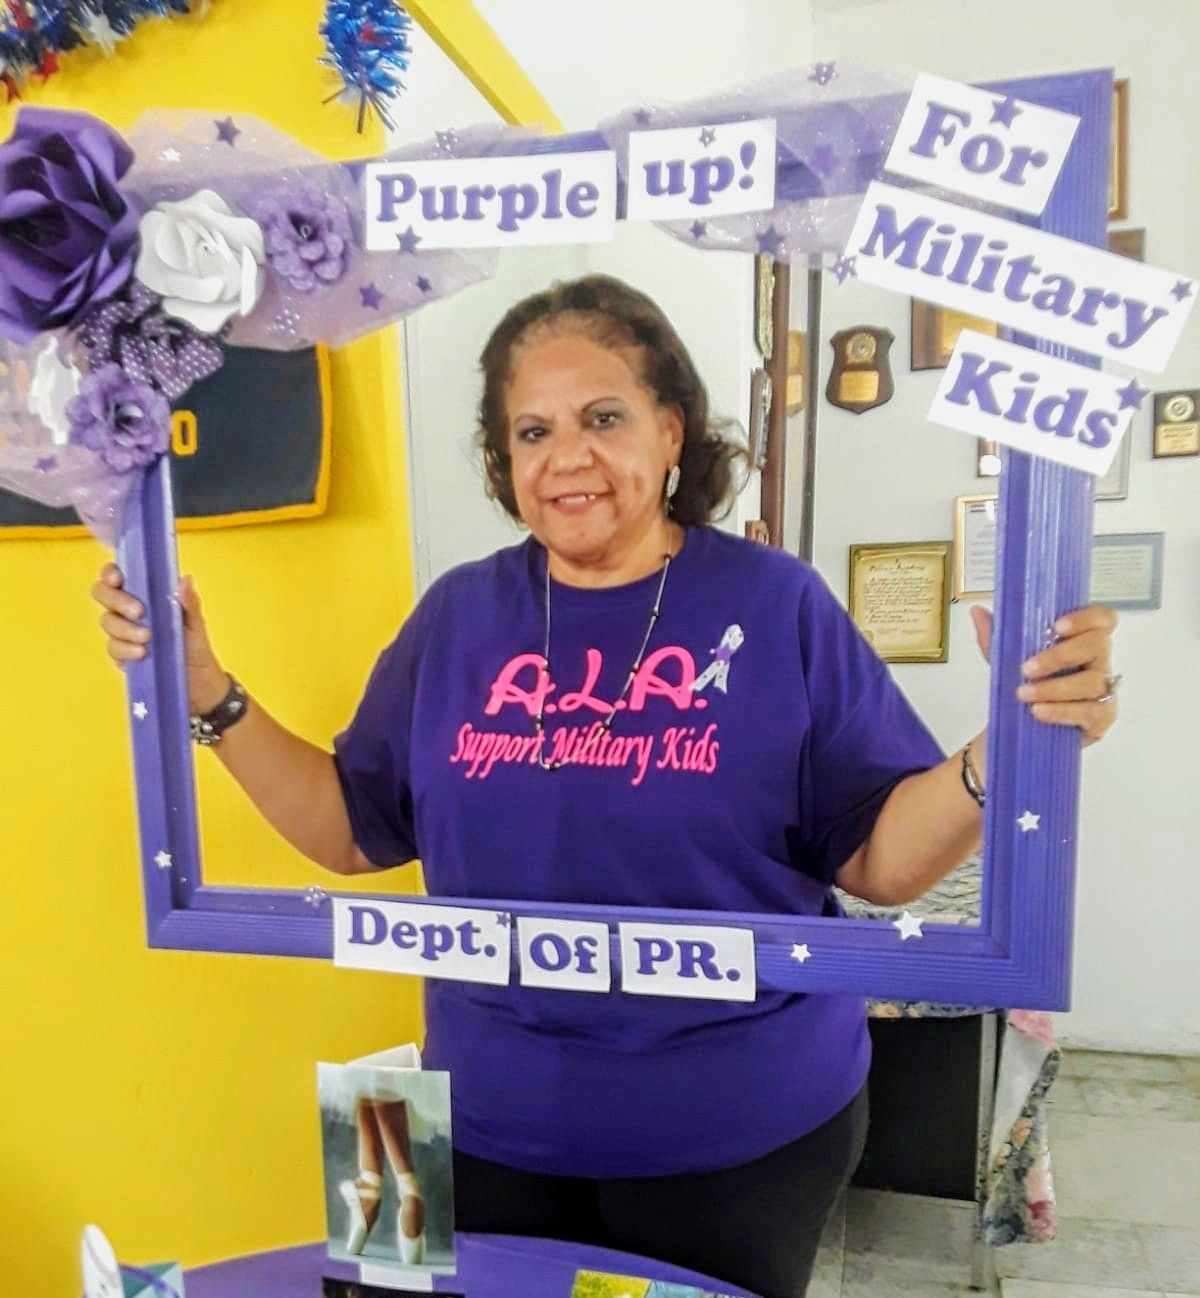 Purple up for military kids. Hilda Soto, Children & Youth